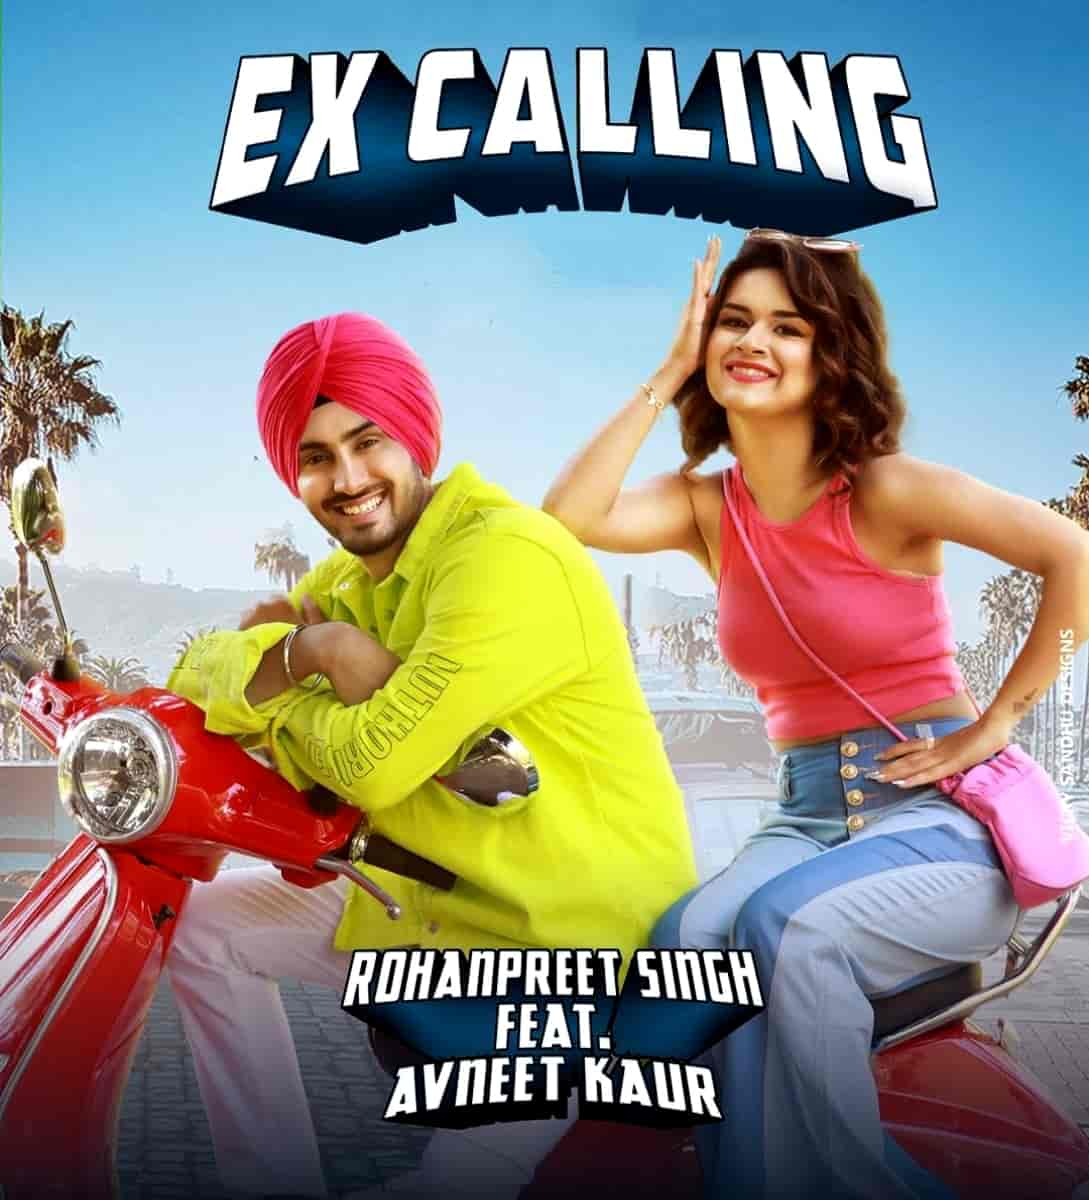 Ex Calling Punjabi Song Image Features Rohanpreet and Avneet Kaur